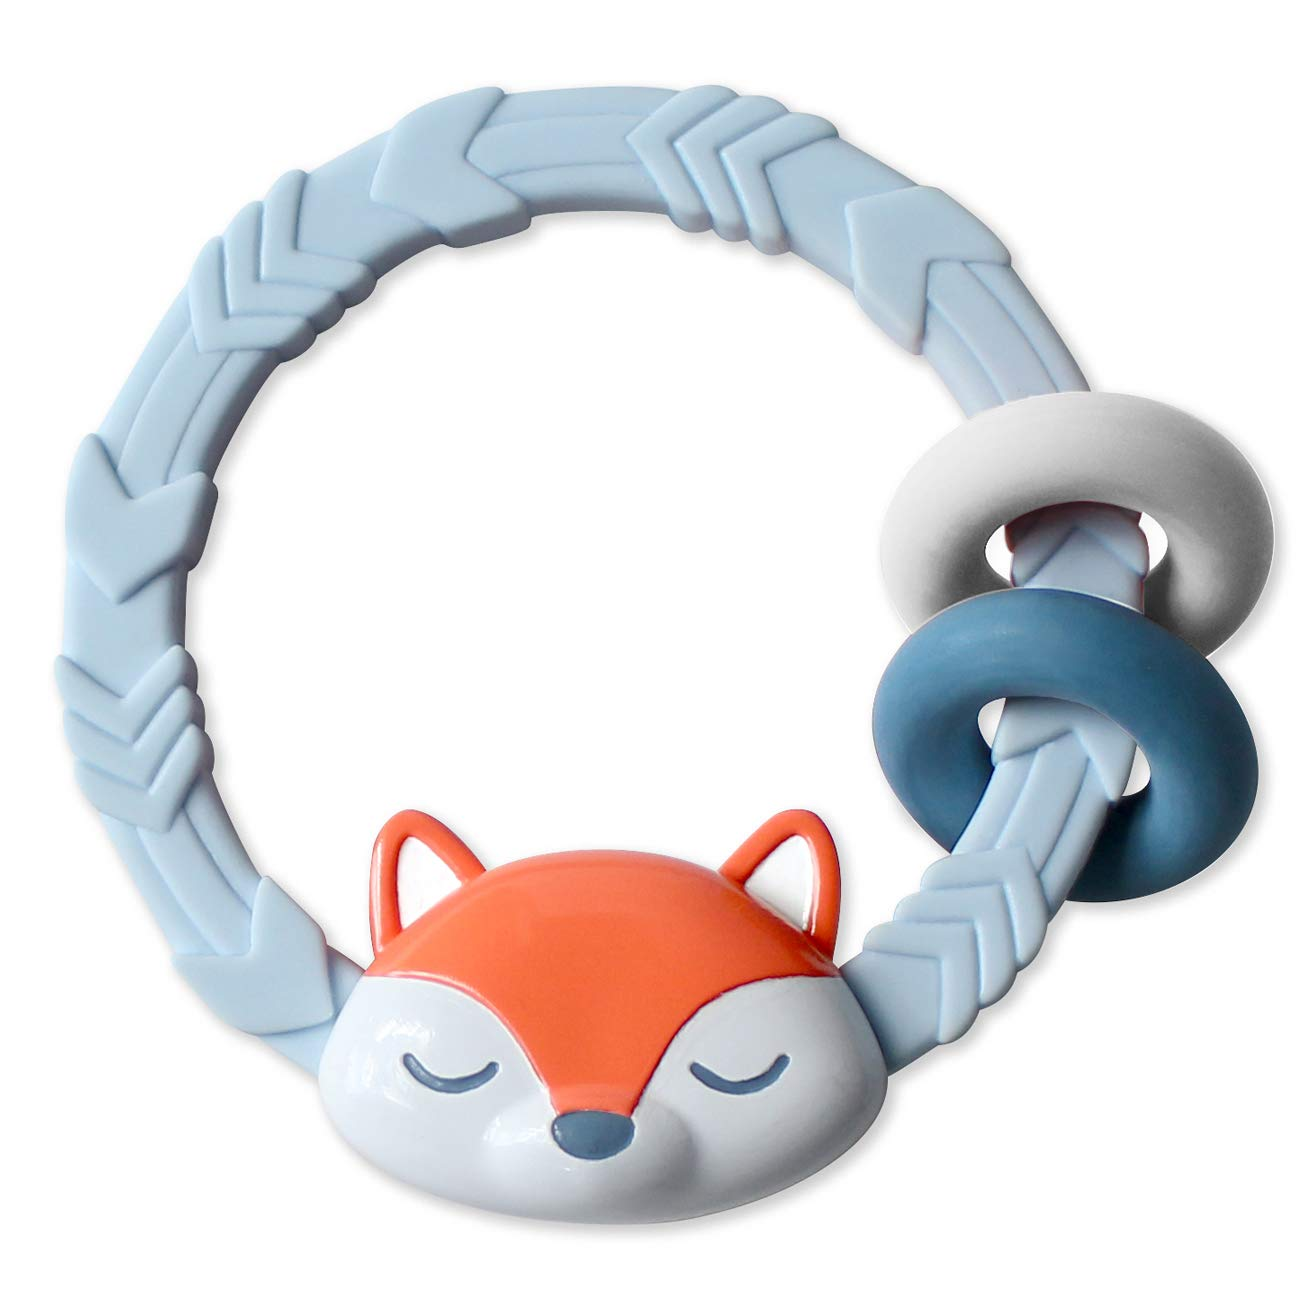 Itzy Ritzy Silicone Teether with Rattle; Features Rattle Sound, Two Silicone Rings & Raised Texture to Soothe Gums; Ages 3 Months & Up; Fox